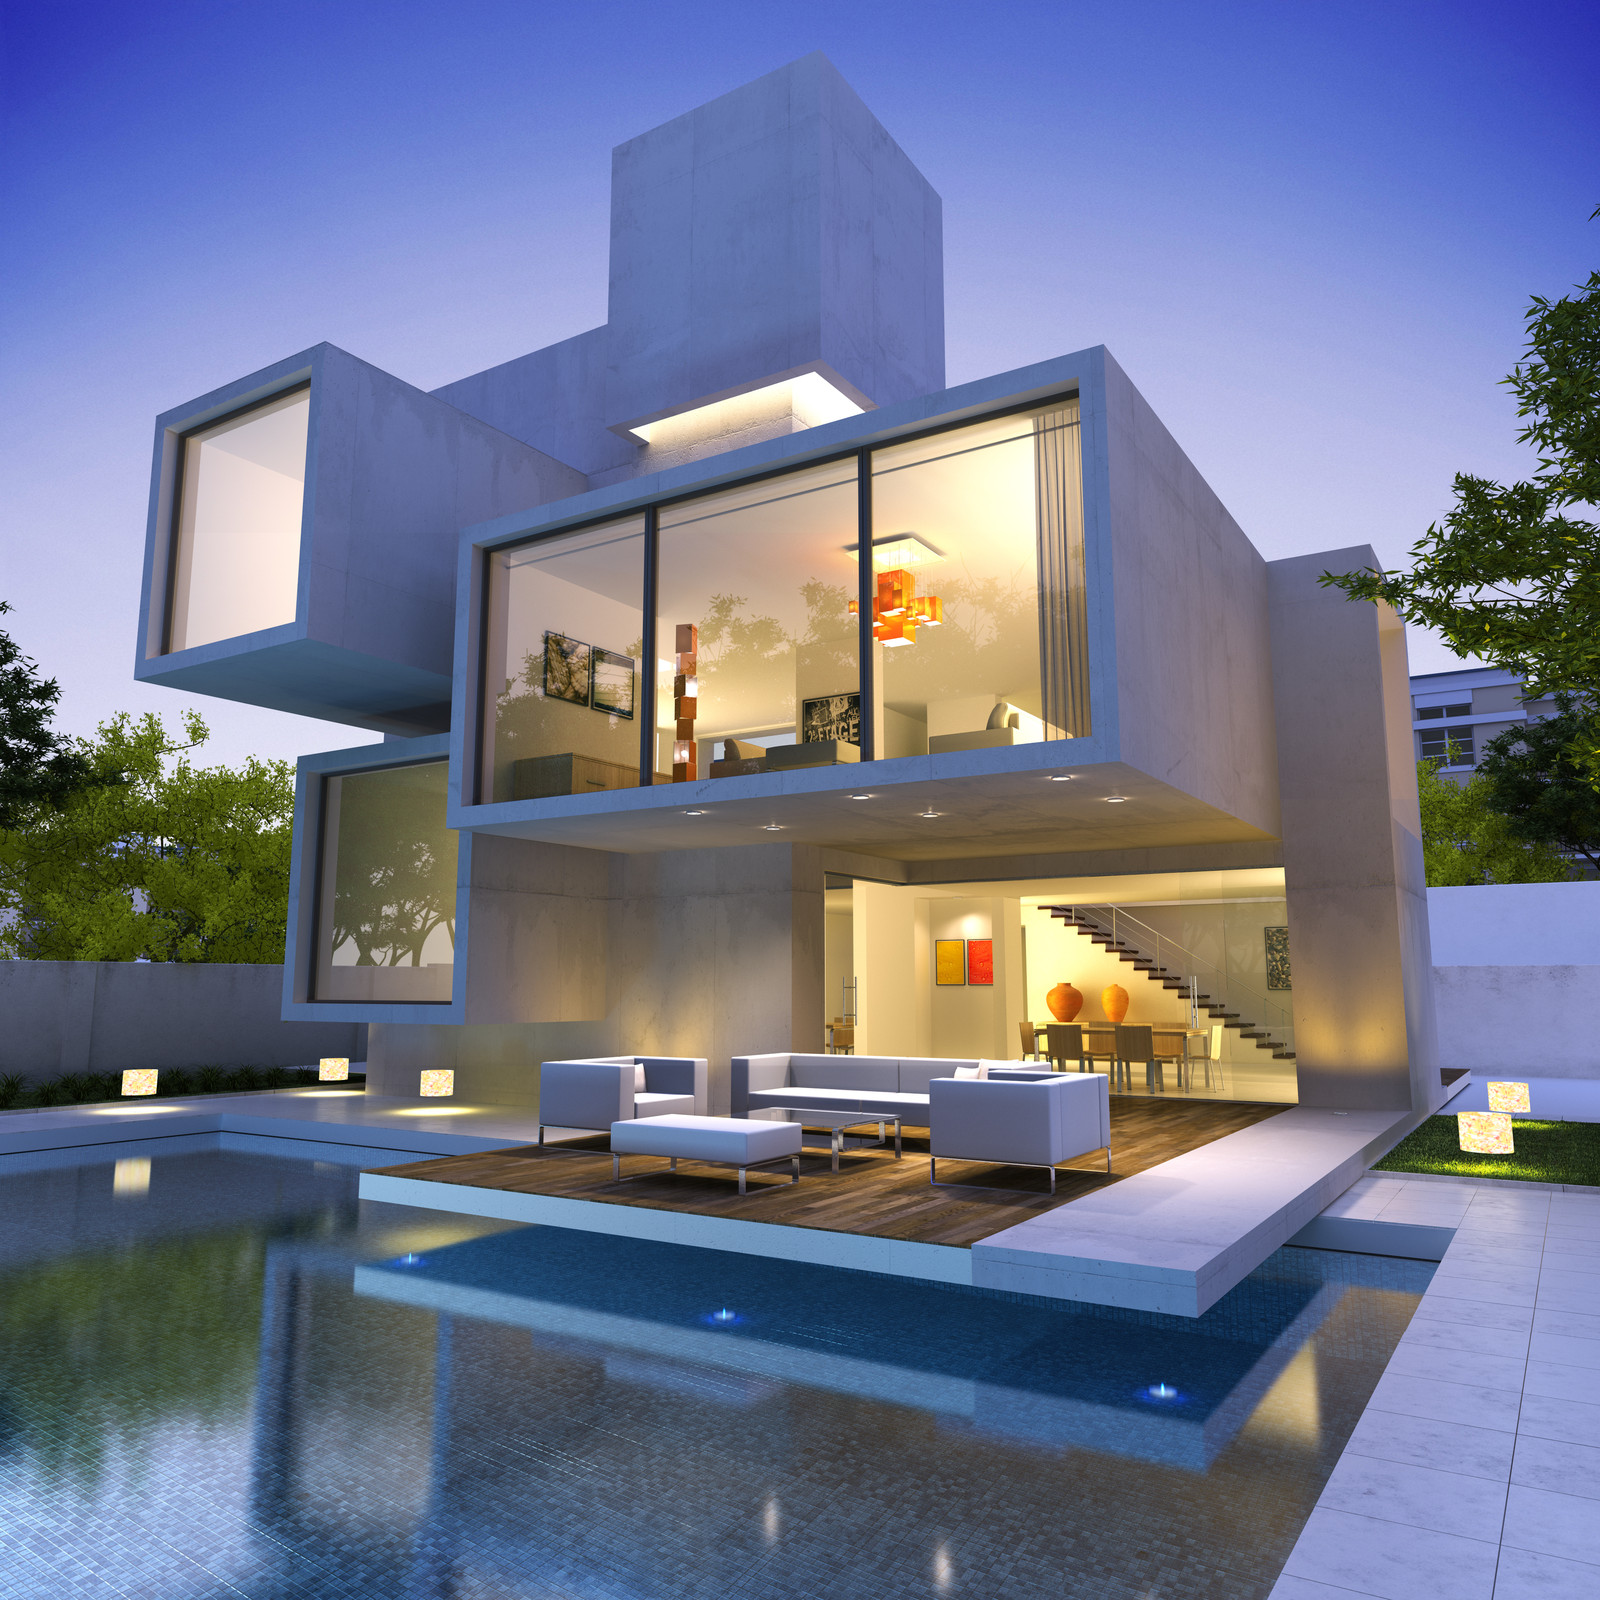 A guide to modern homes – yonohomedesign.com